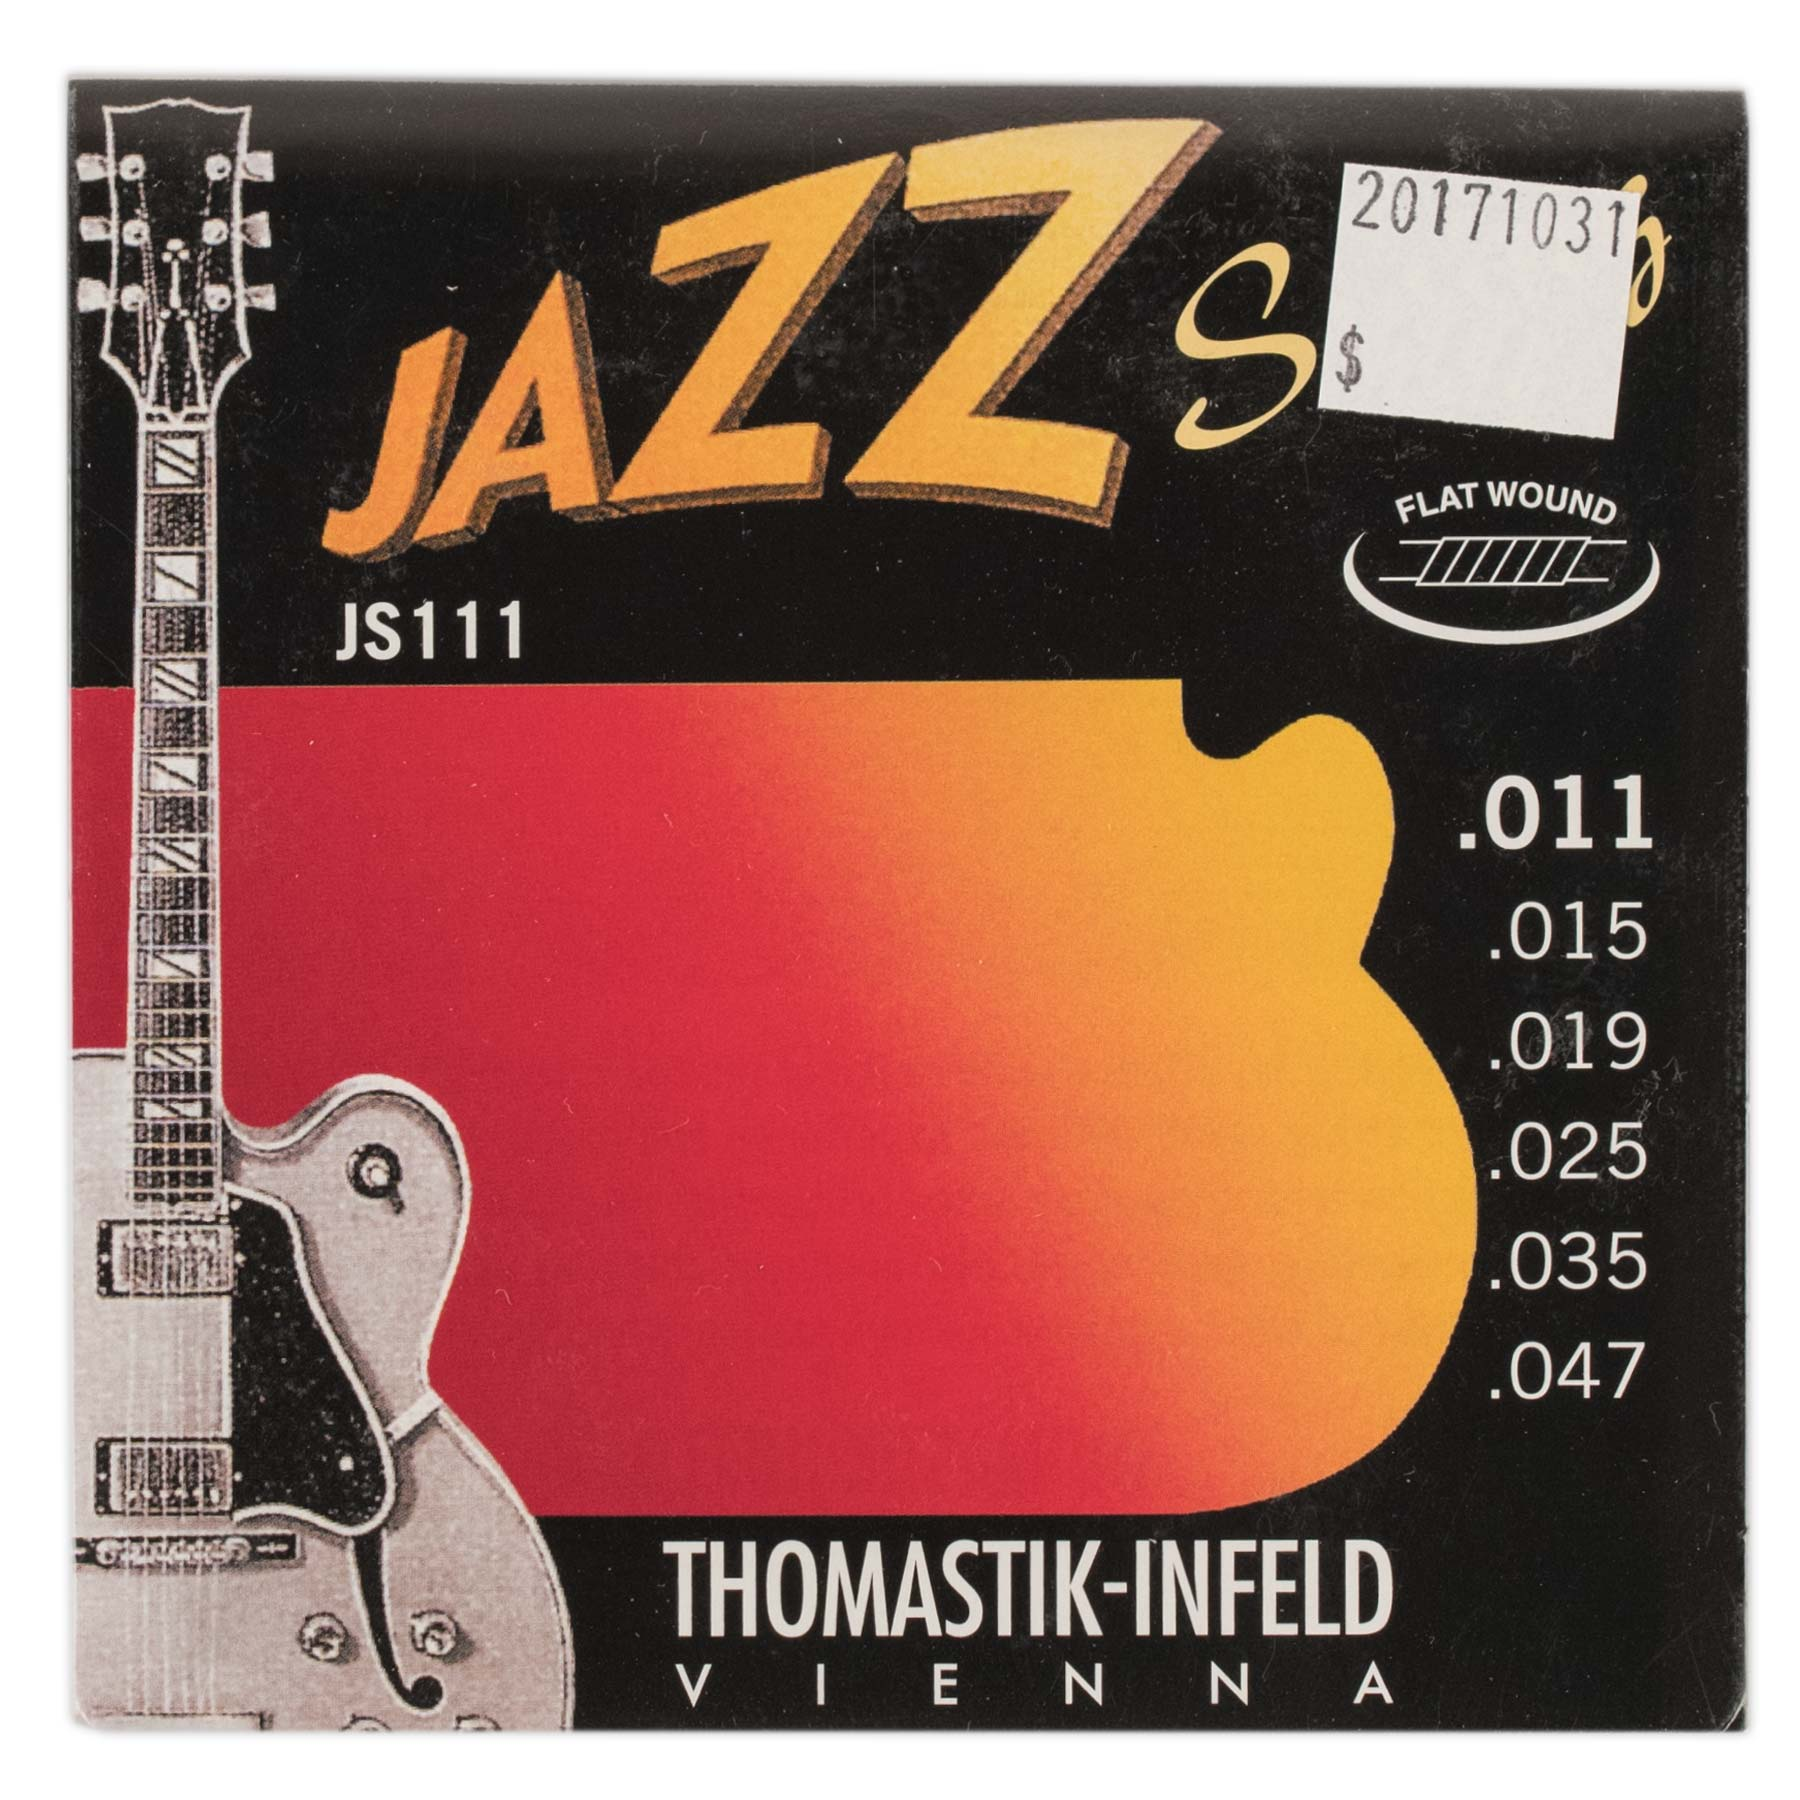 THOMASTIK-INFELD JAZZ SWING FLATWOUND ELECTRIC GUITAR SET .011-047